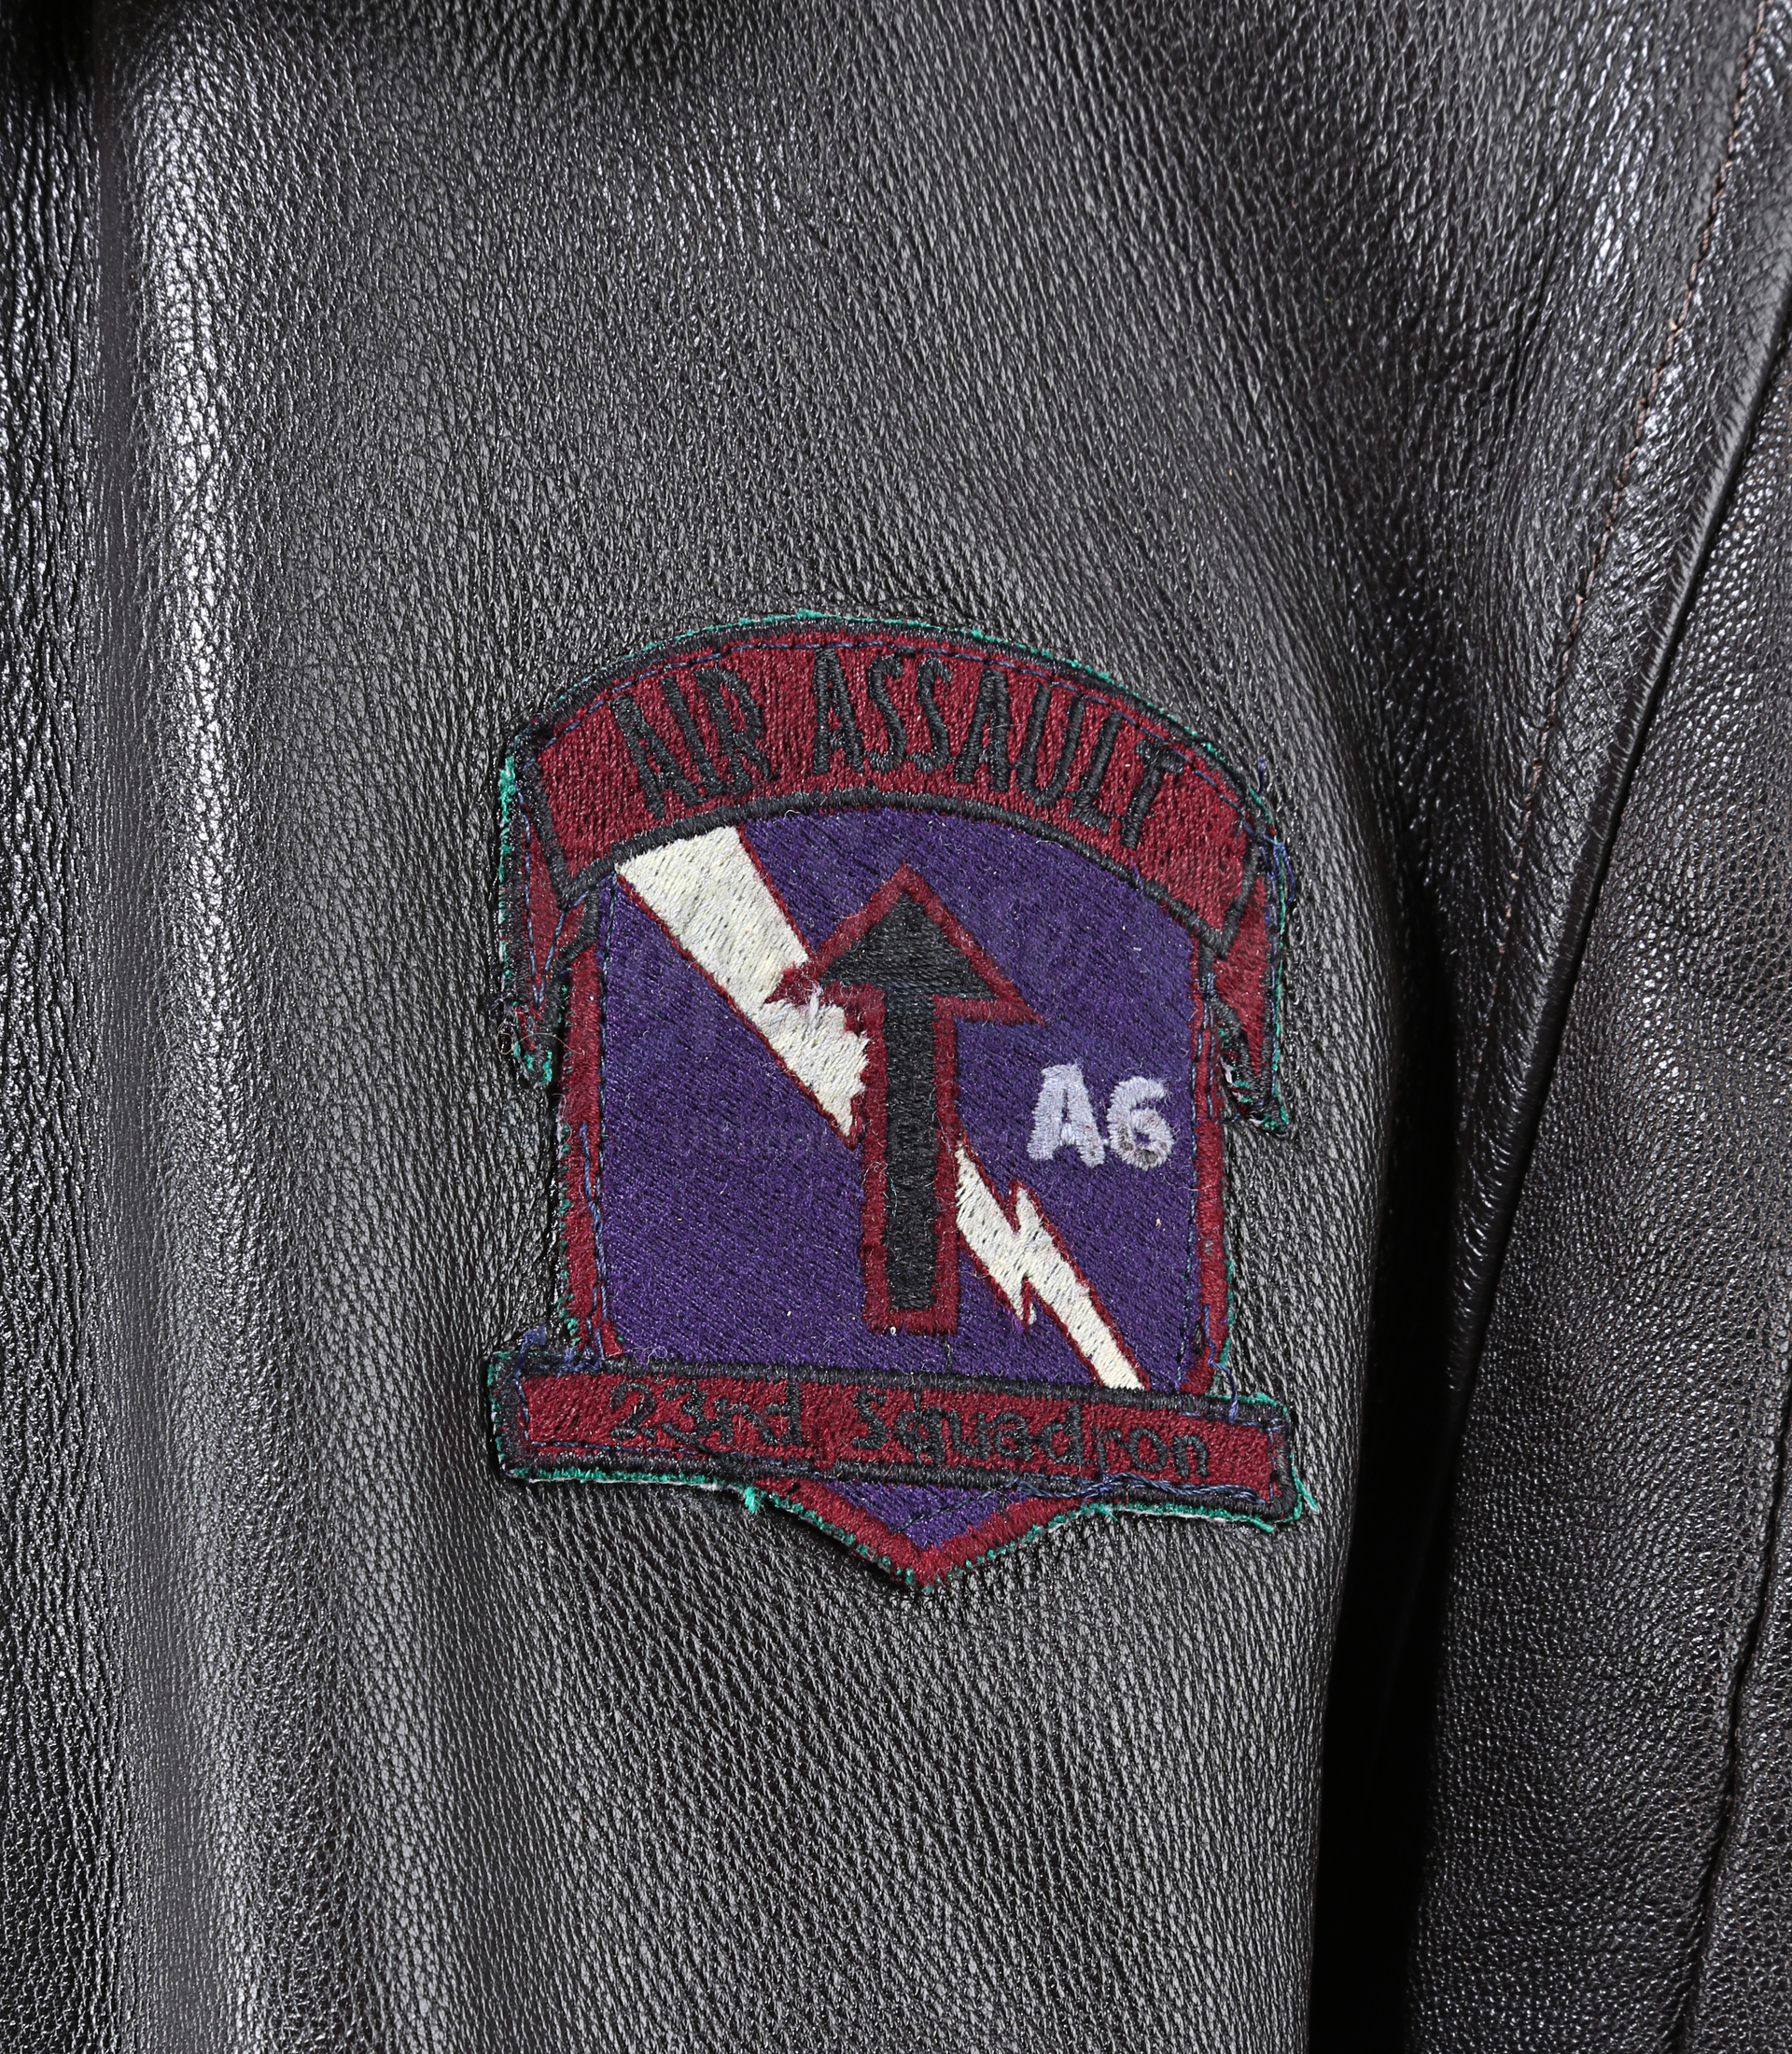 THE 6TH DAY (2000) - Adam Gibson's (Arnold Schwarzenegger) Leather Jacket - Image 2 of 15